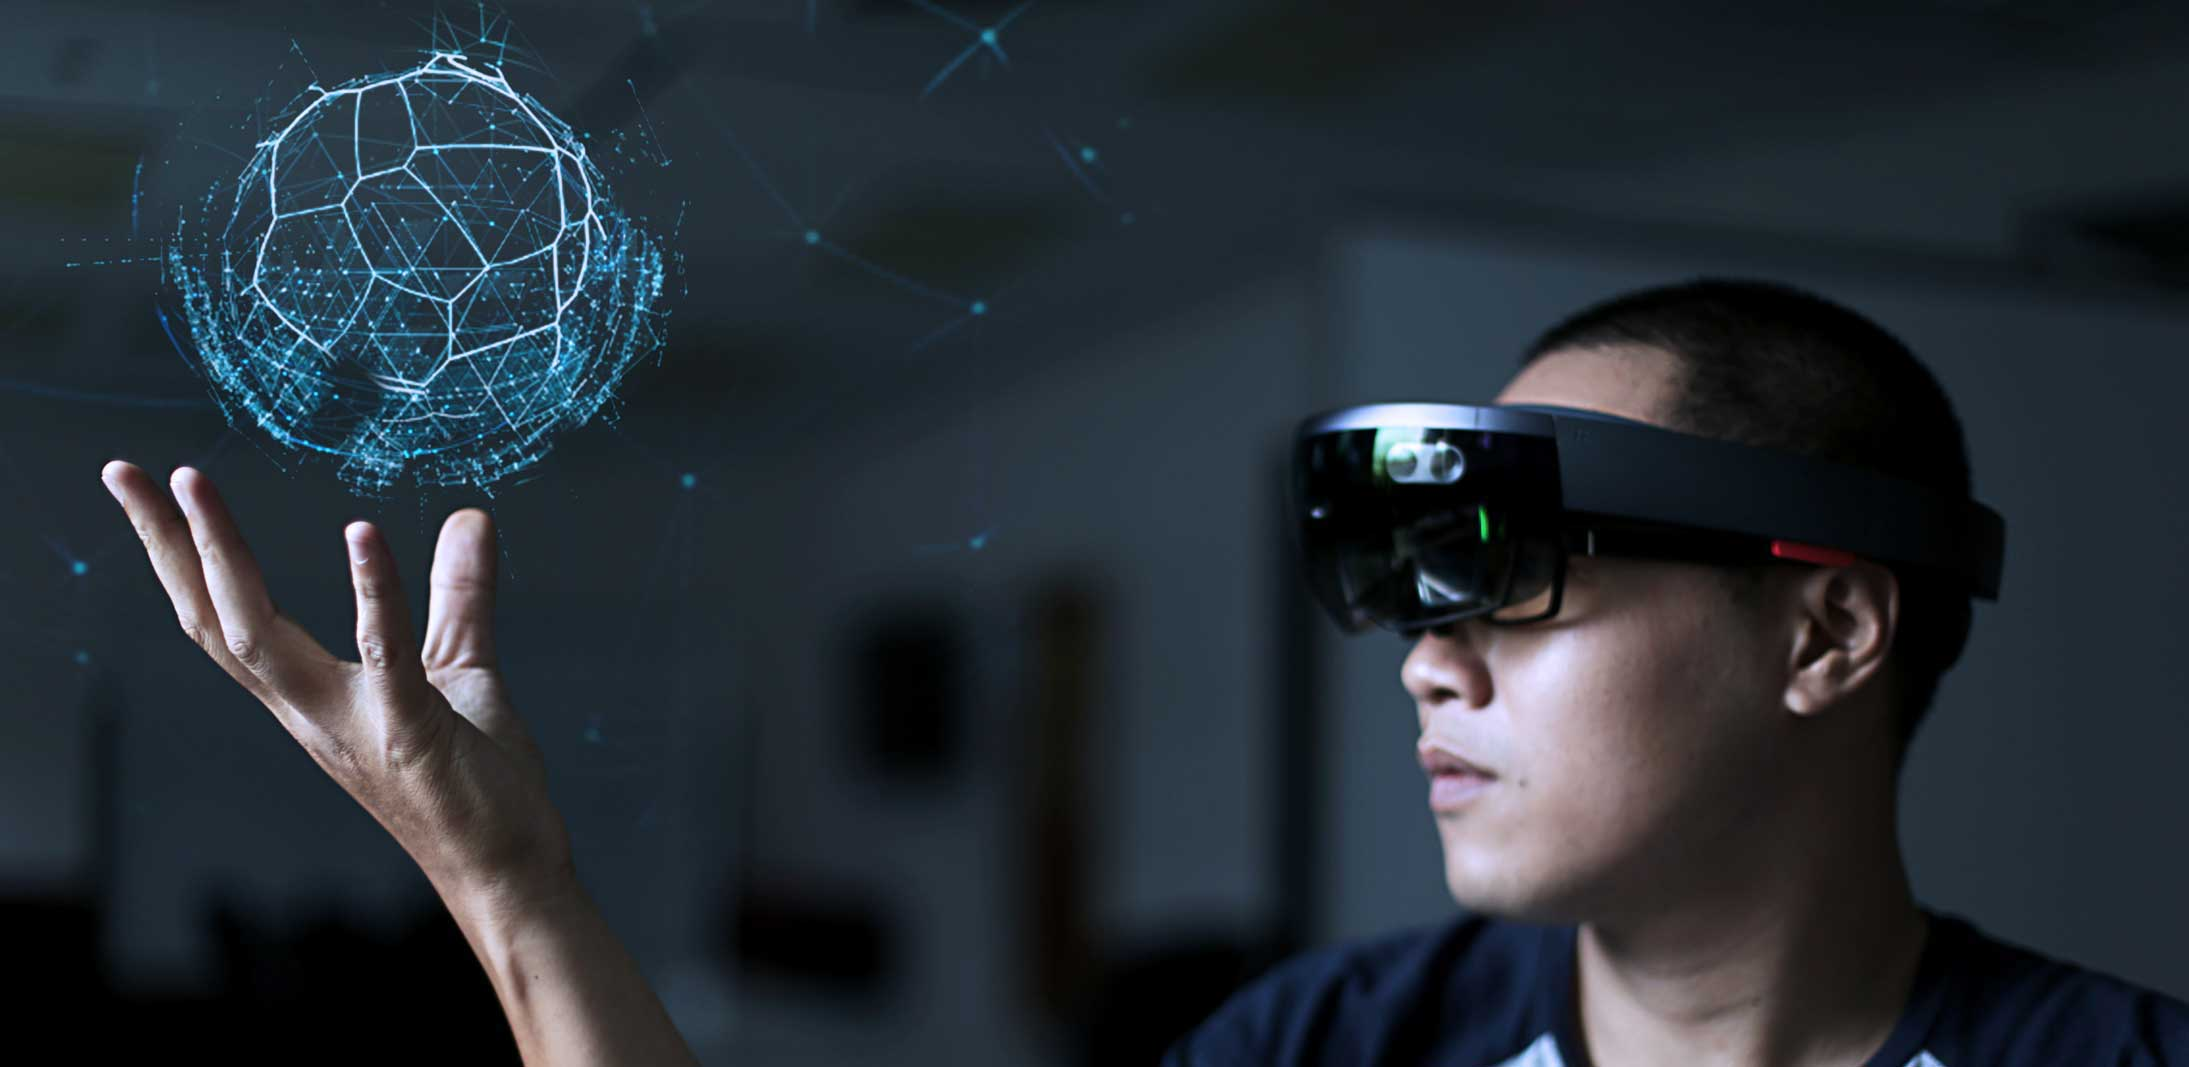 Augmented reality inde for markedsføring